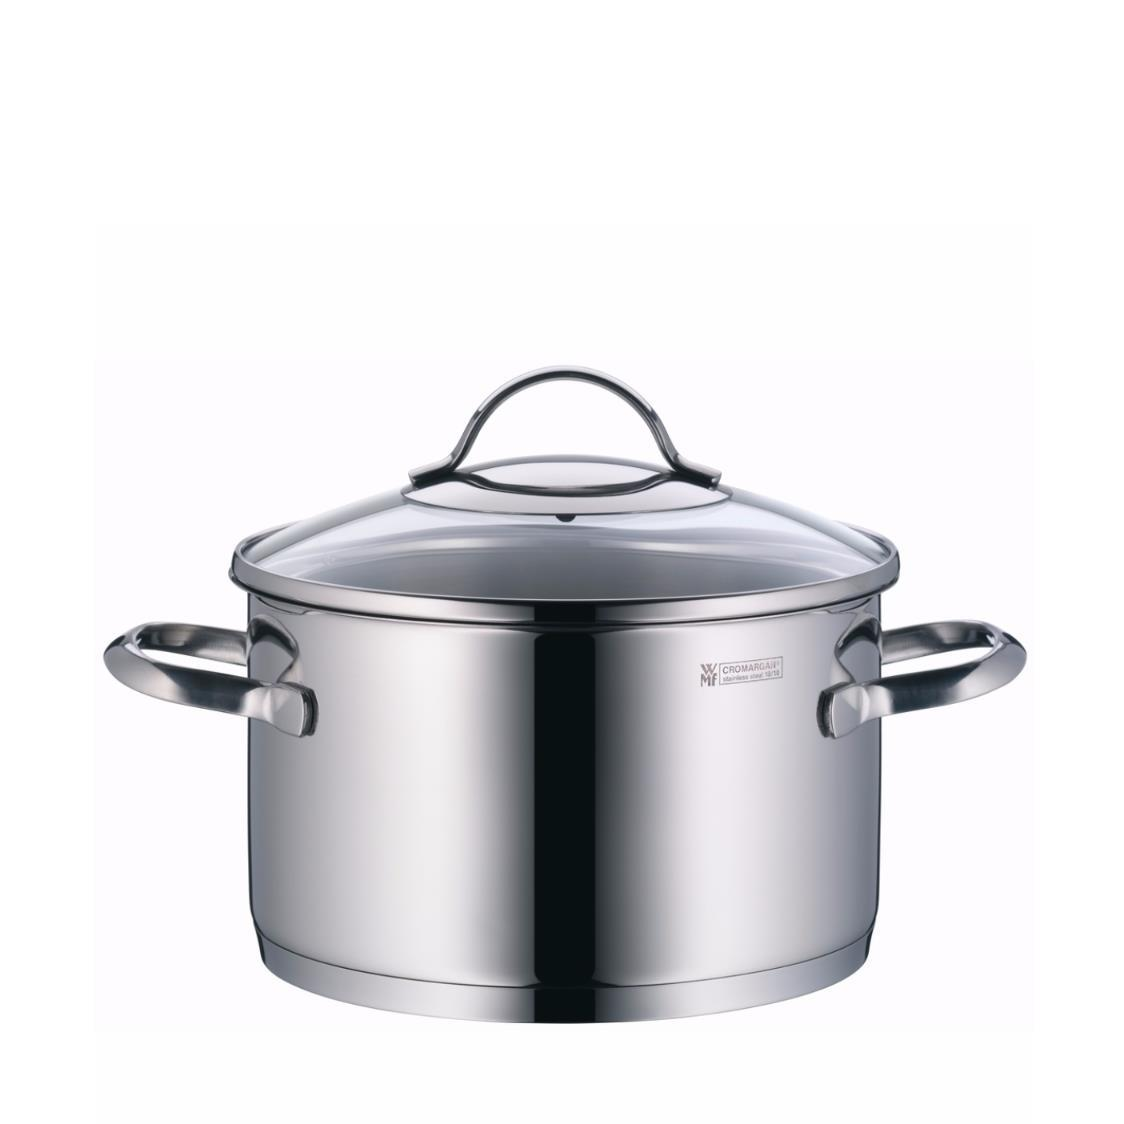 Provence Plus High Casserole with cover 20cm